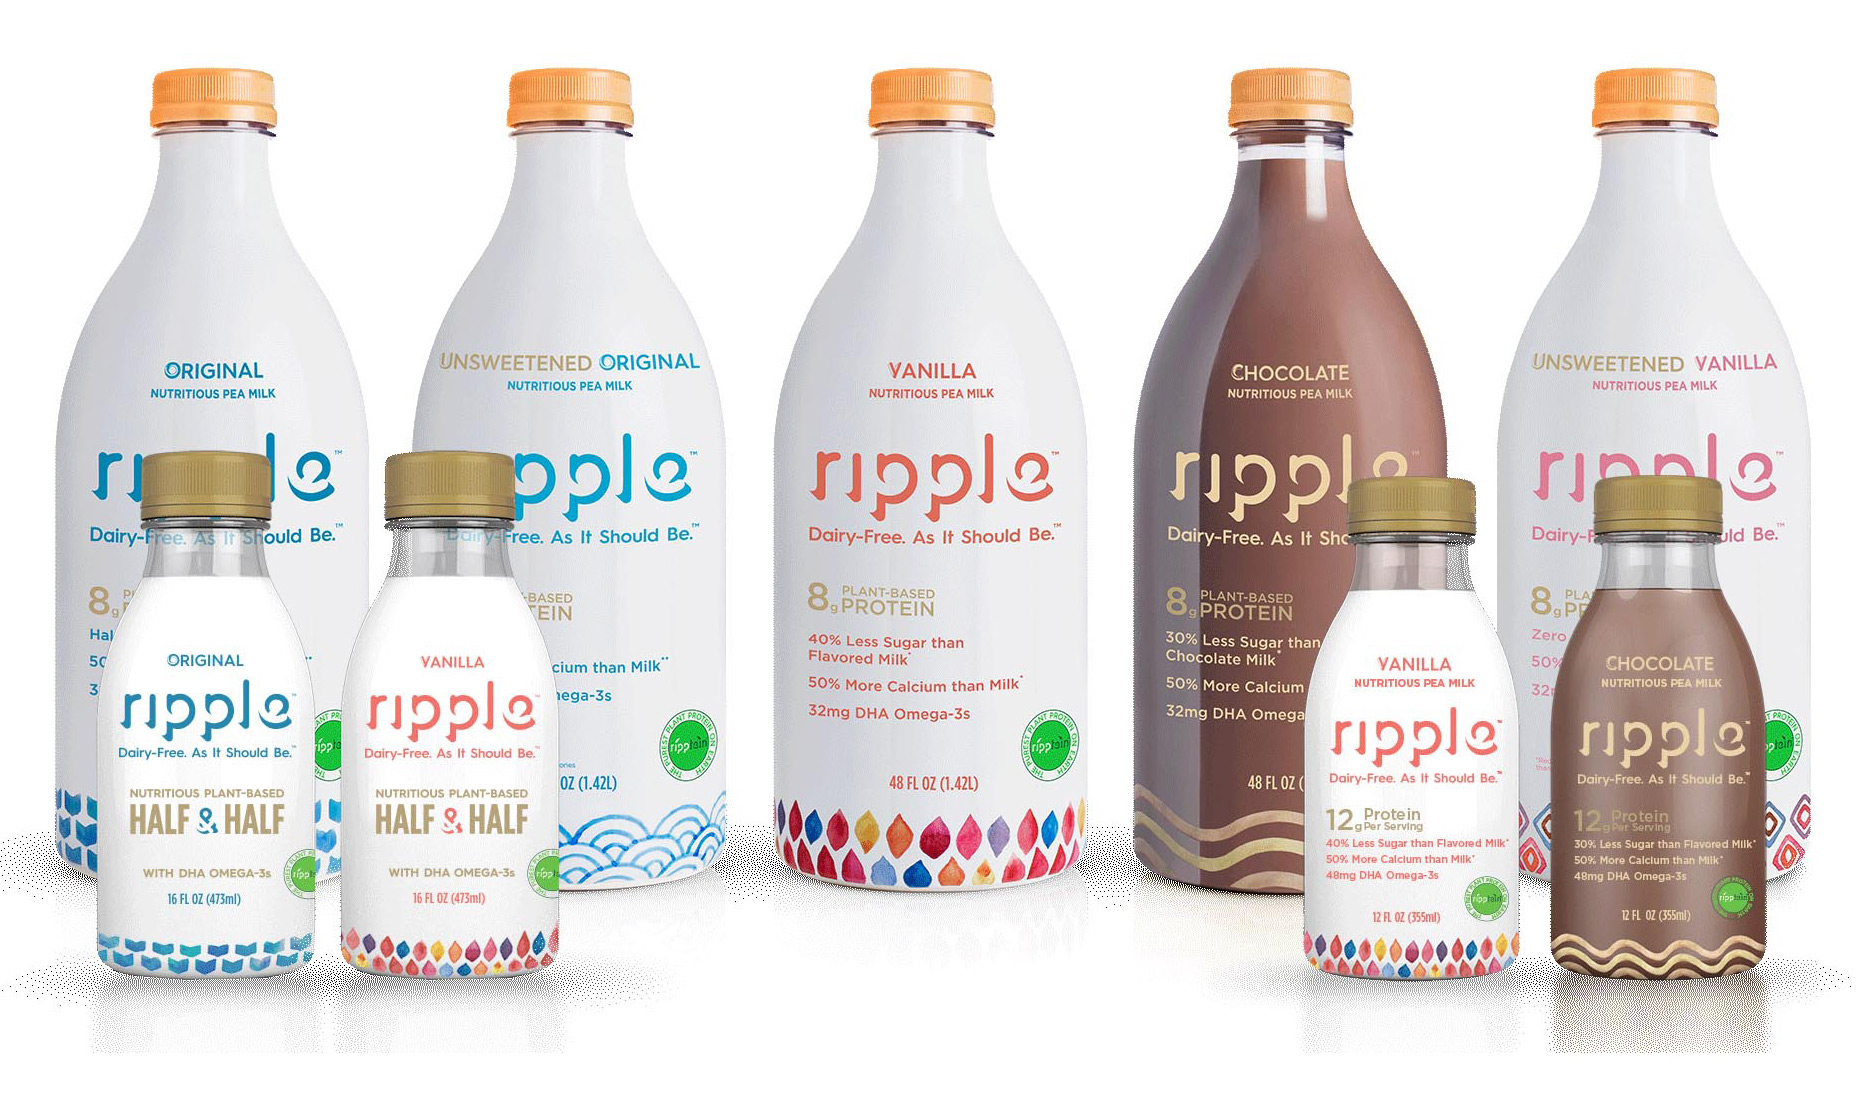 Ripple pea milk